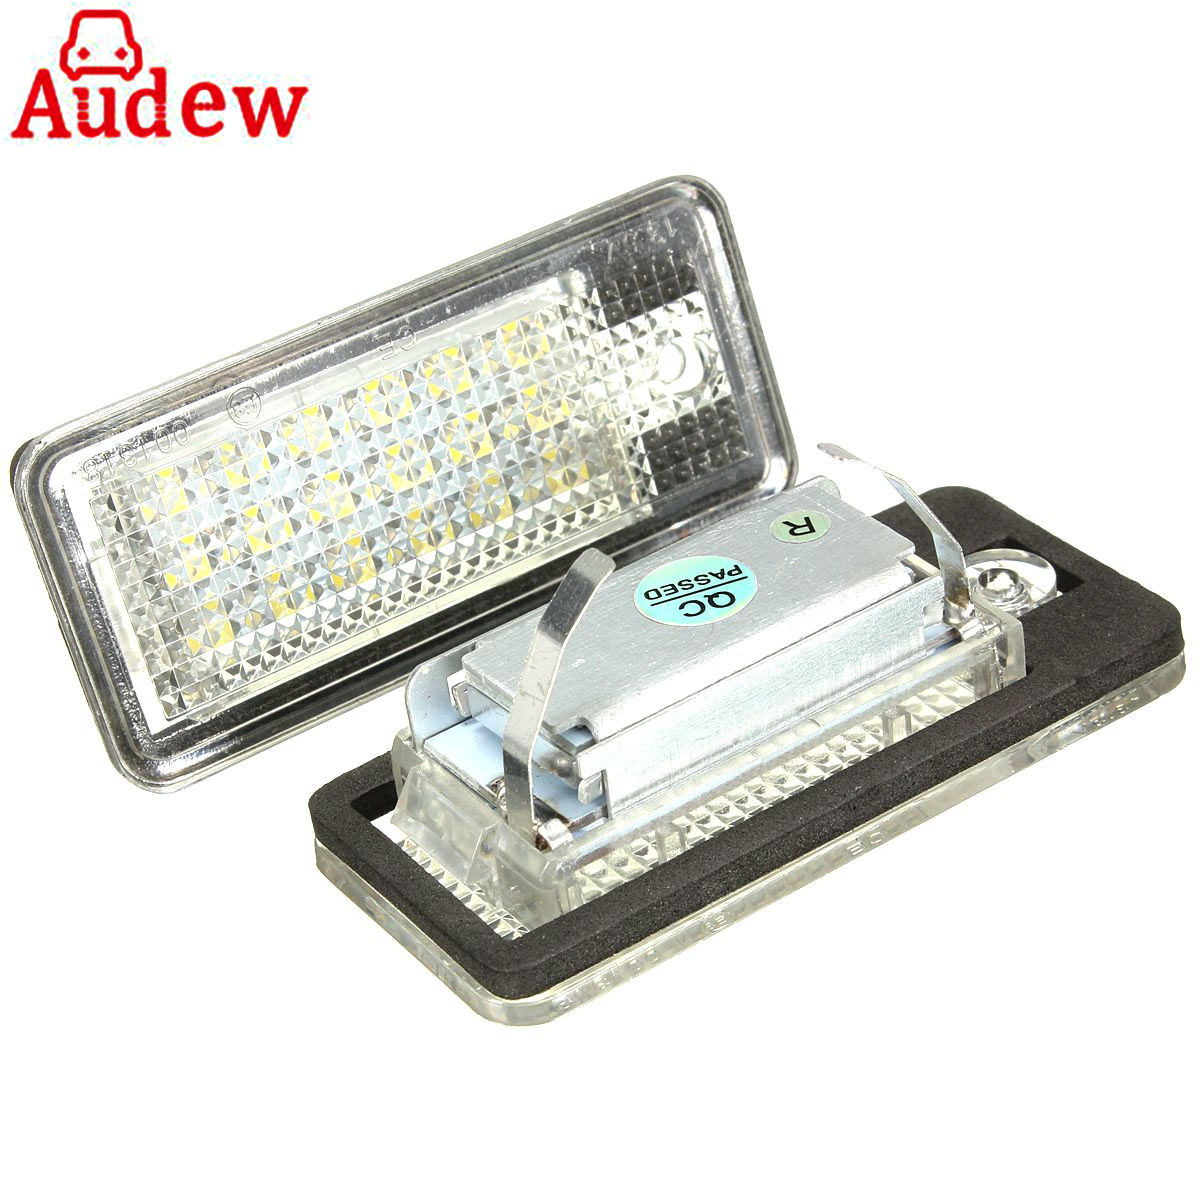 2Pcs Car Error Free 18 LED License Number Plate Light White Lamp For Audi A3 S3 A4 S4 B6 B7 A6 S6 A8 Q7 2pcs 18 led 6000k license number plate light lamp12v for audi a3 s3 a4 s4 b6 b7 a6 s6 a8 q7 no canbus error